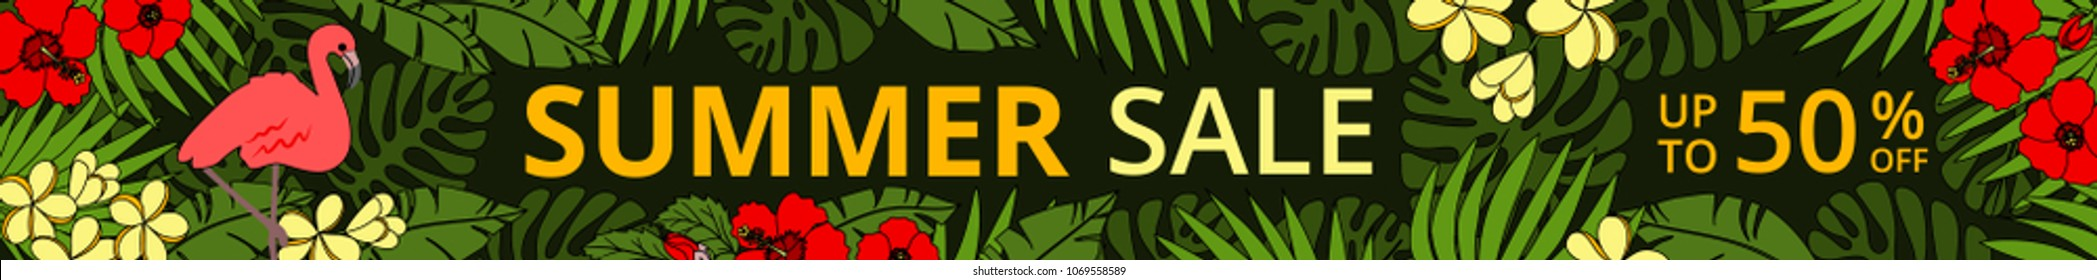 Summer sale horizontal web banner with pink flamingo, tropic palm leaves and flowers on black background